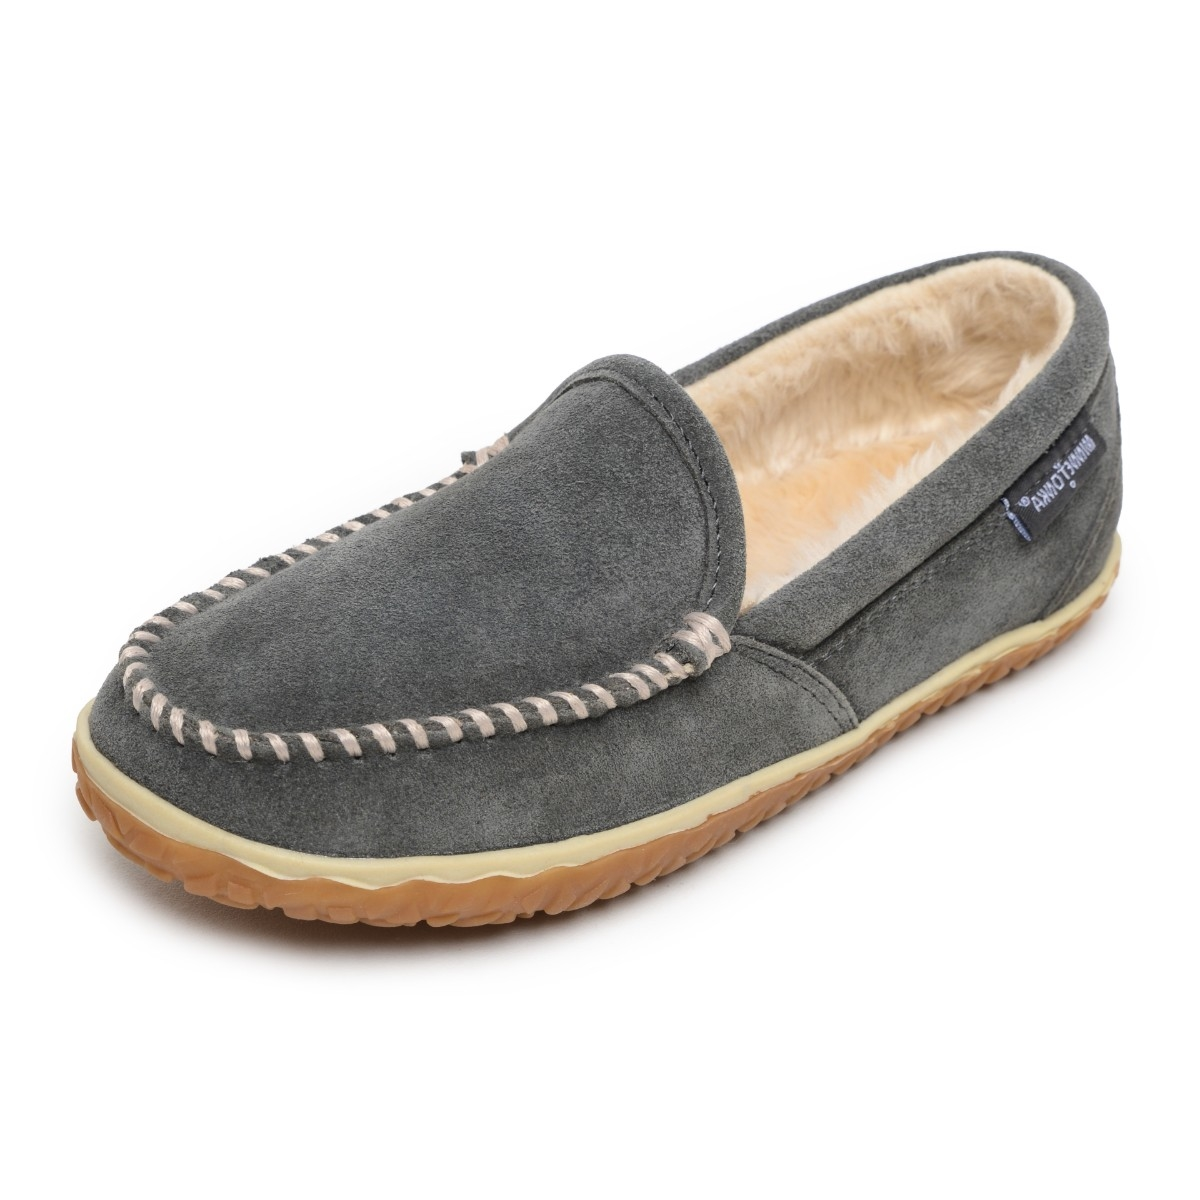 Minnetonka Moccasins 40125 - Women's Tempe - Pile Lined Slipper - Grey